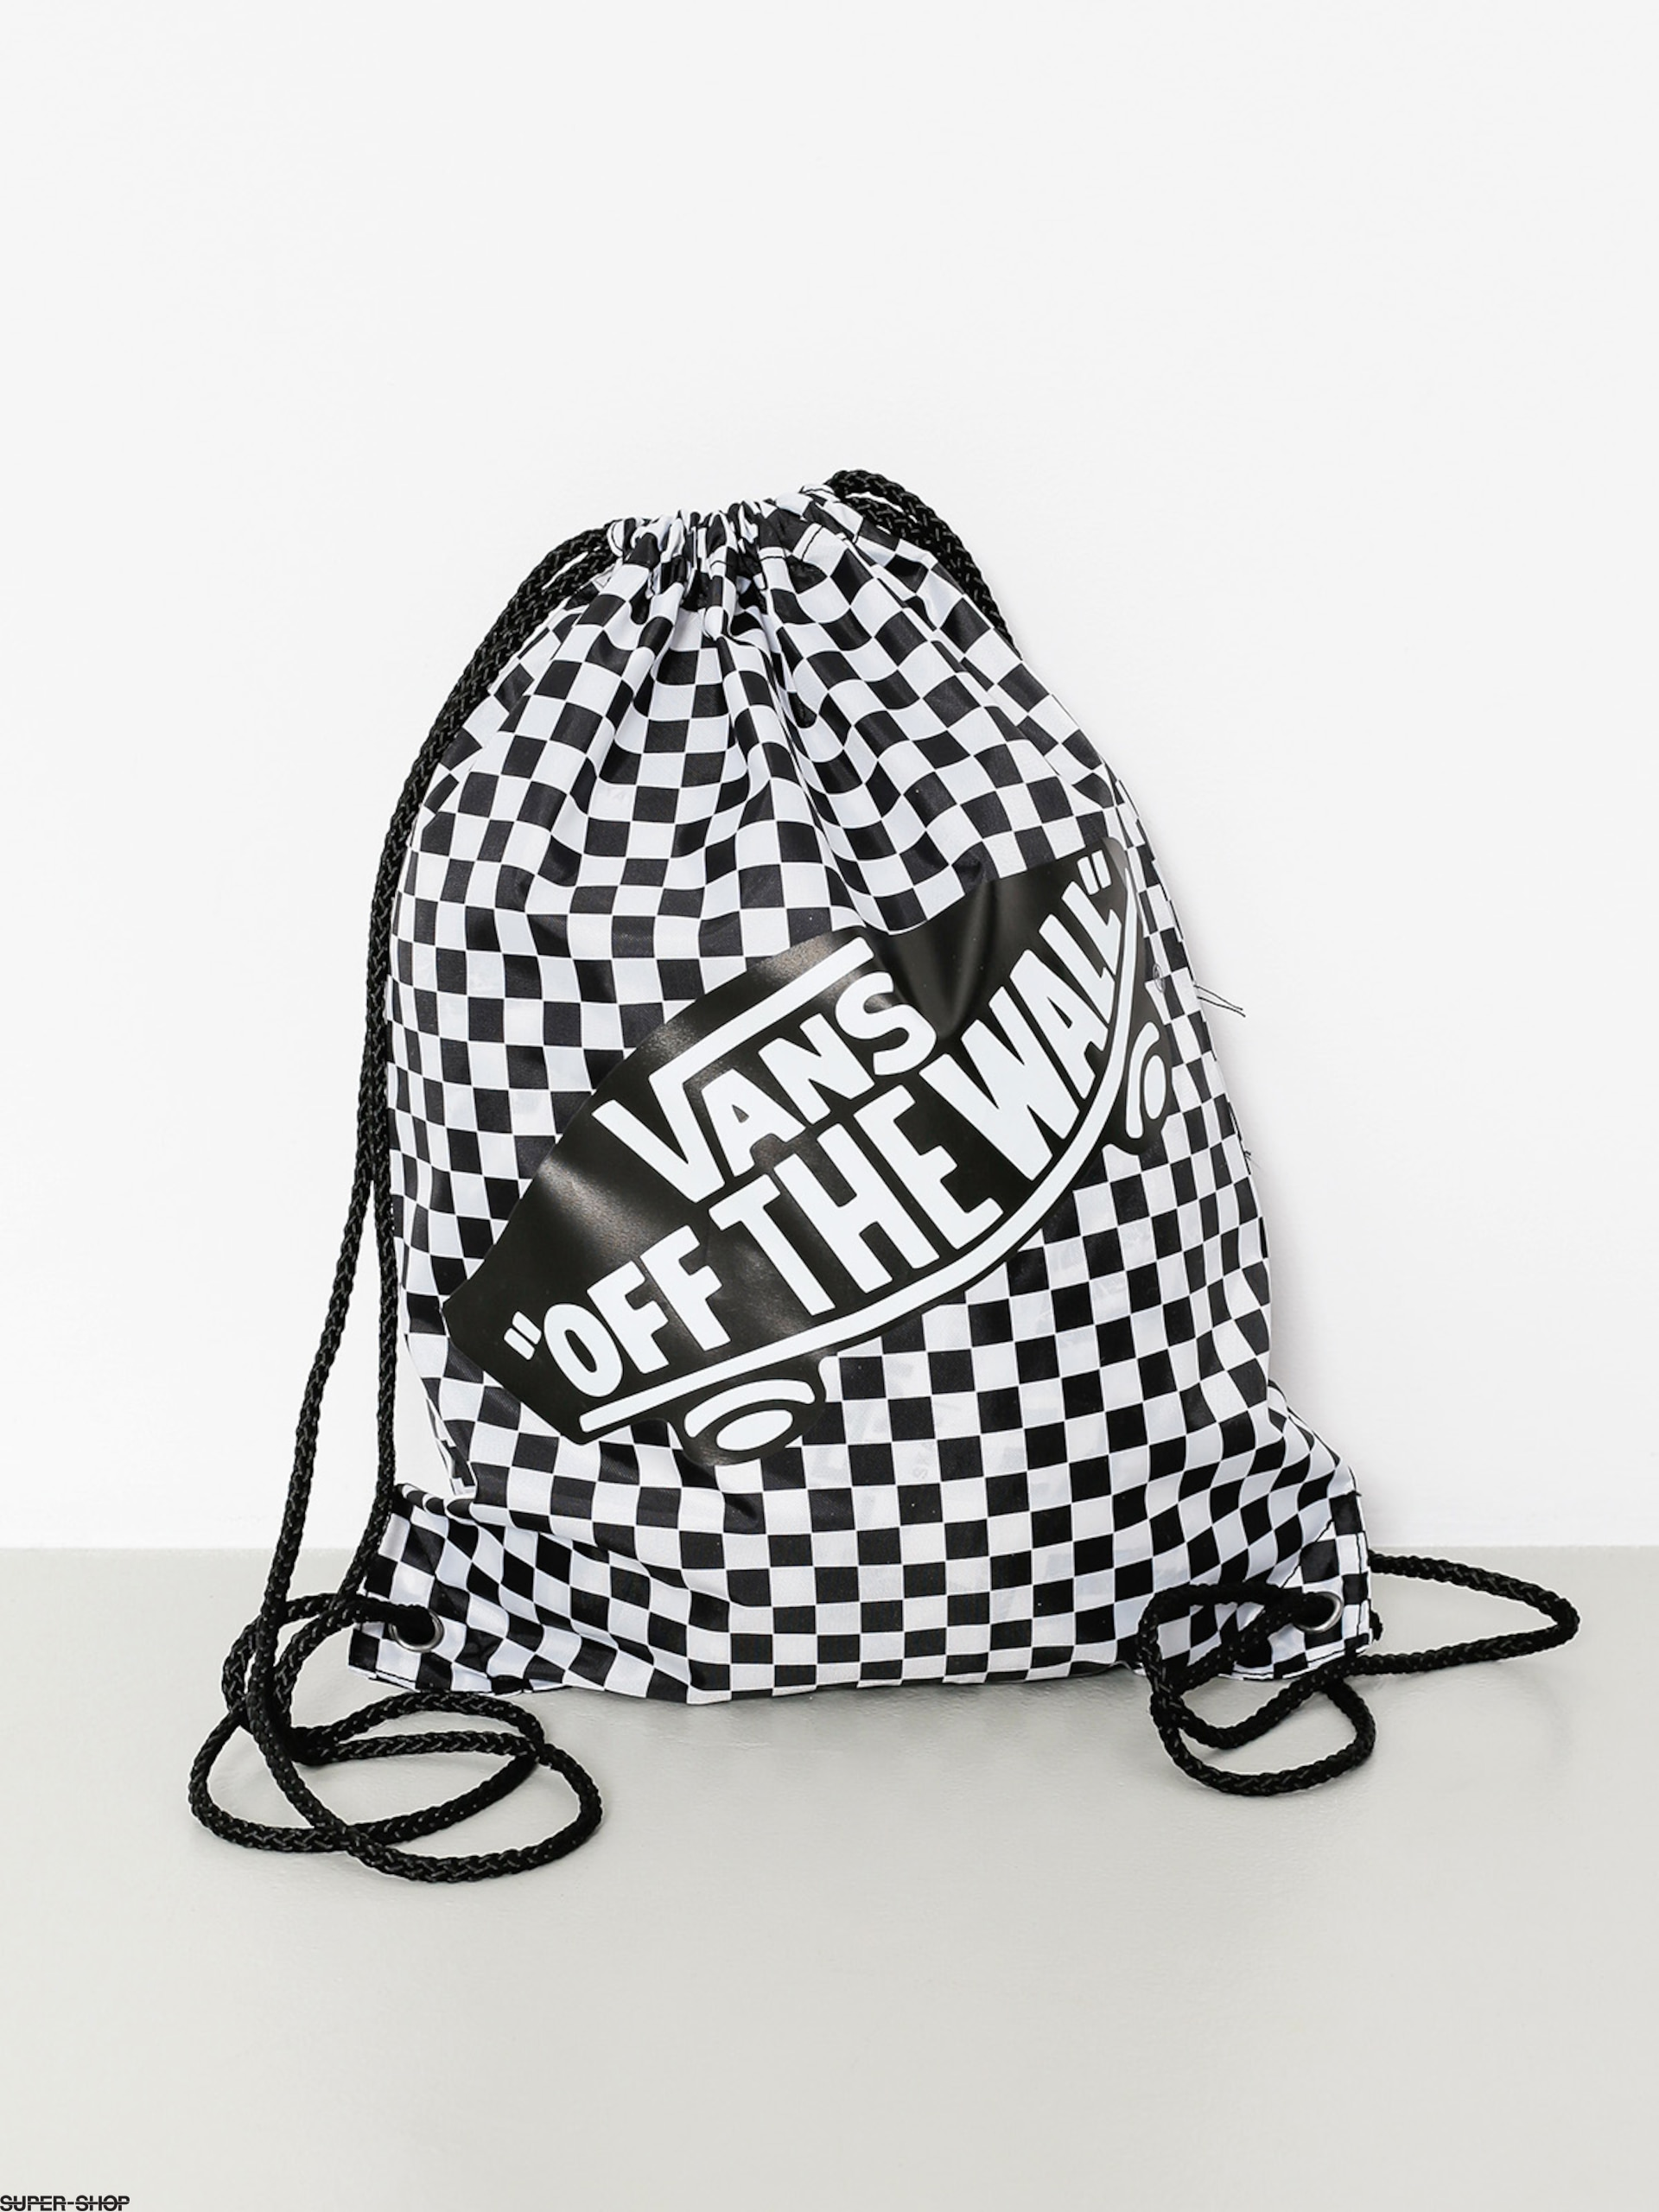 59a1c1f65ea 911017-w1920-vans-backpack-benched-bag-wmn-black-white-checkerboard.jpg